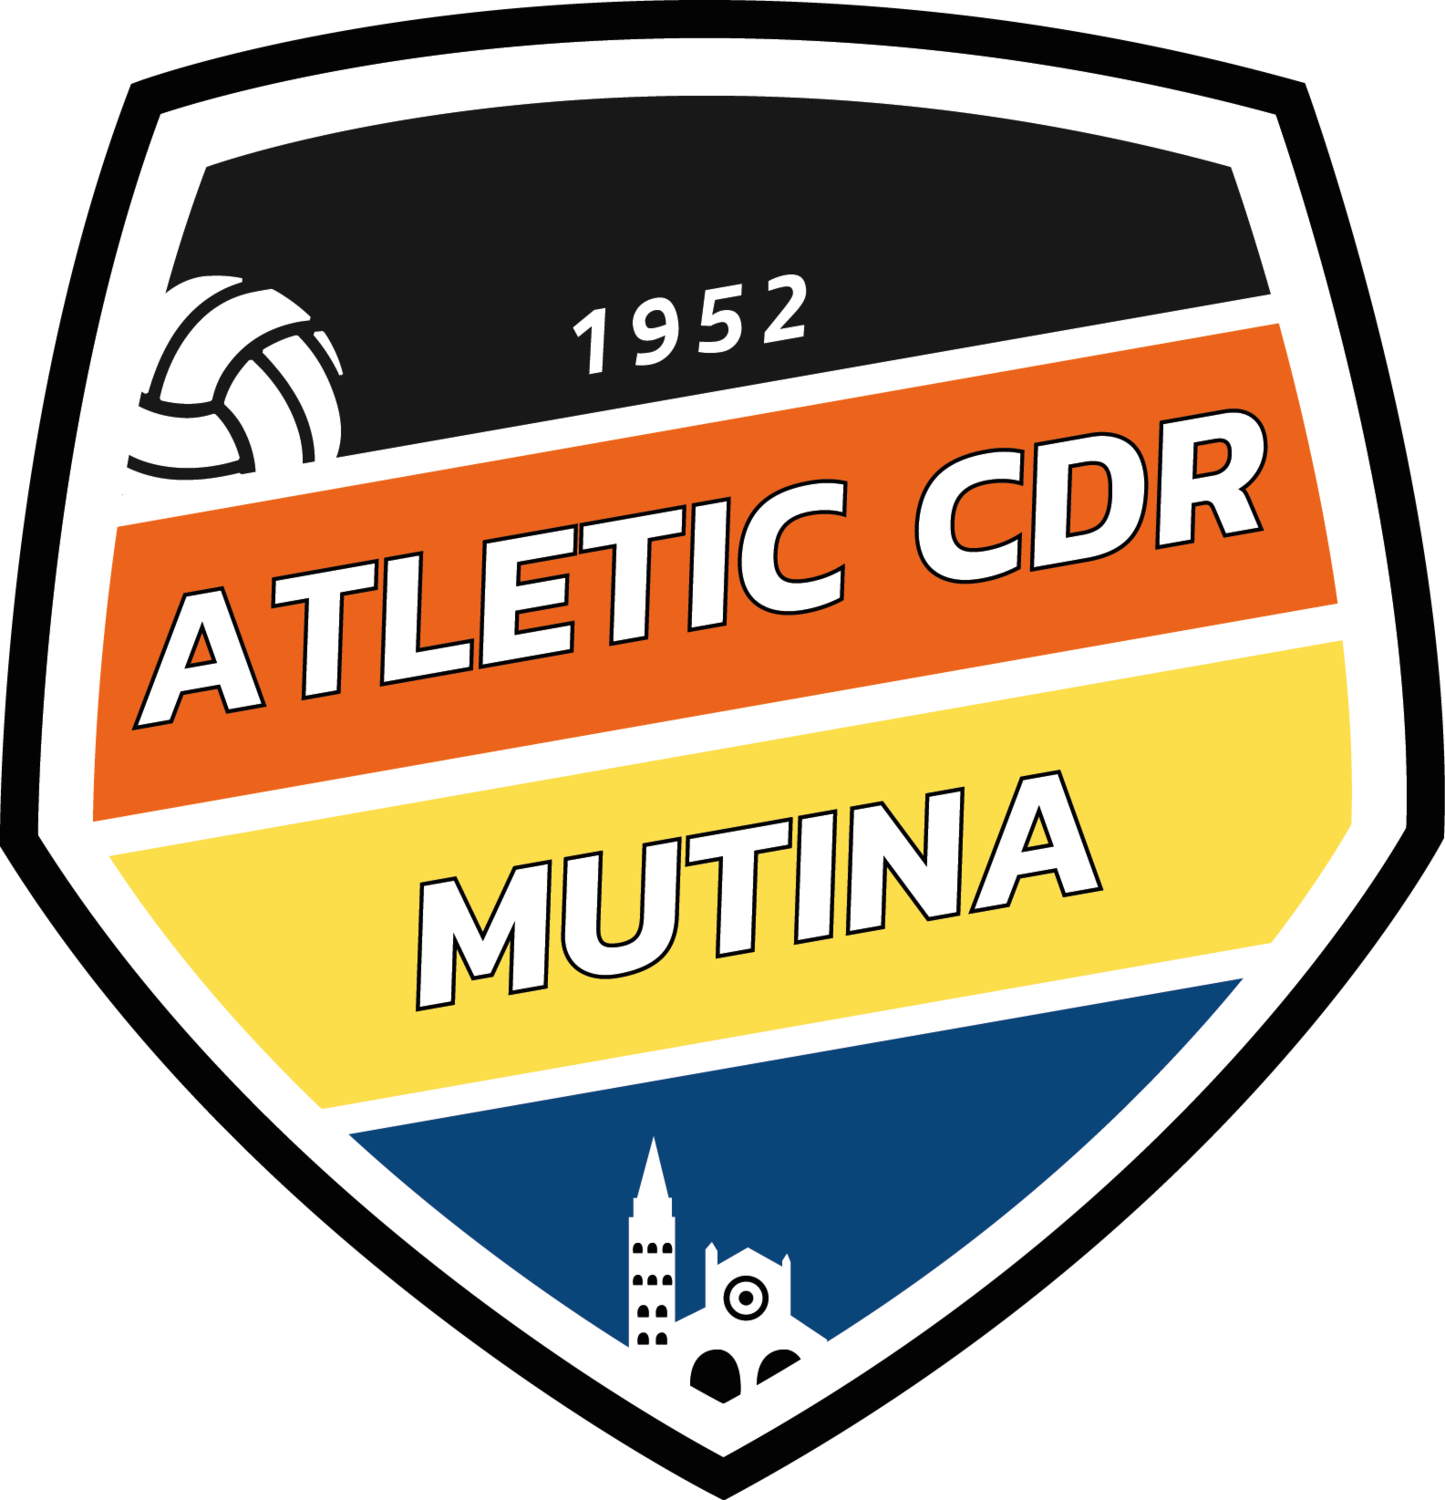 Atletic CDR M.